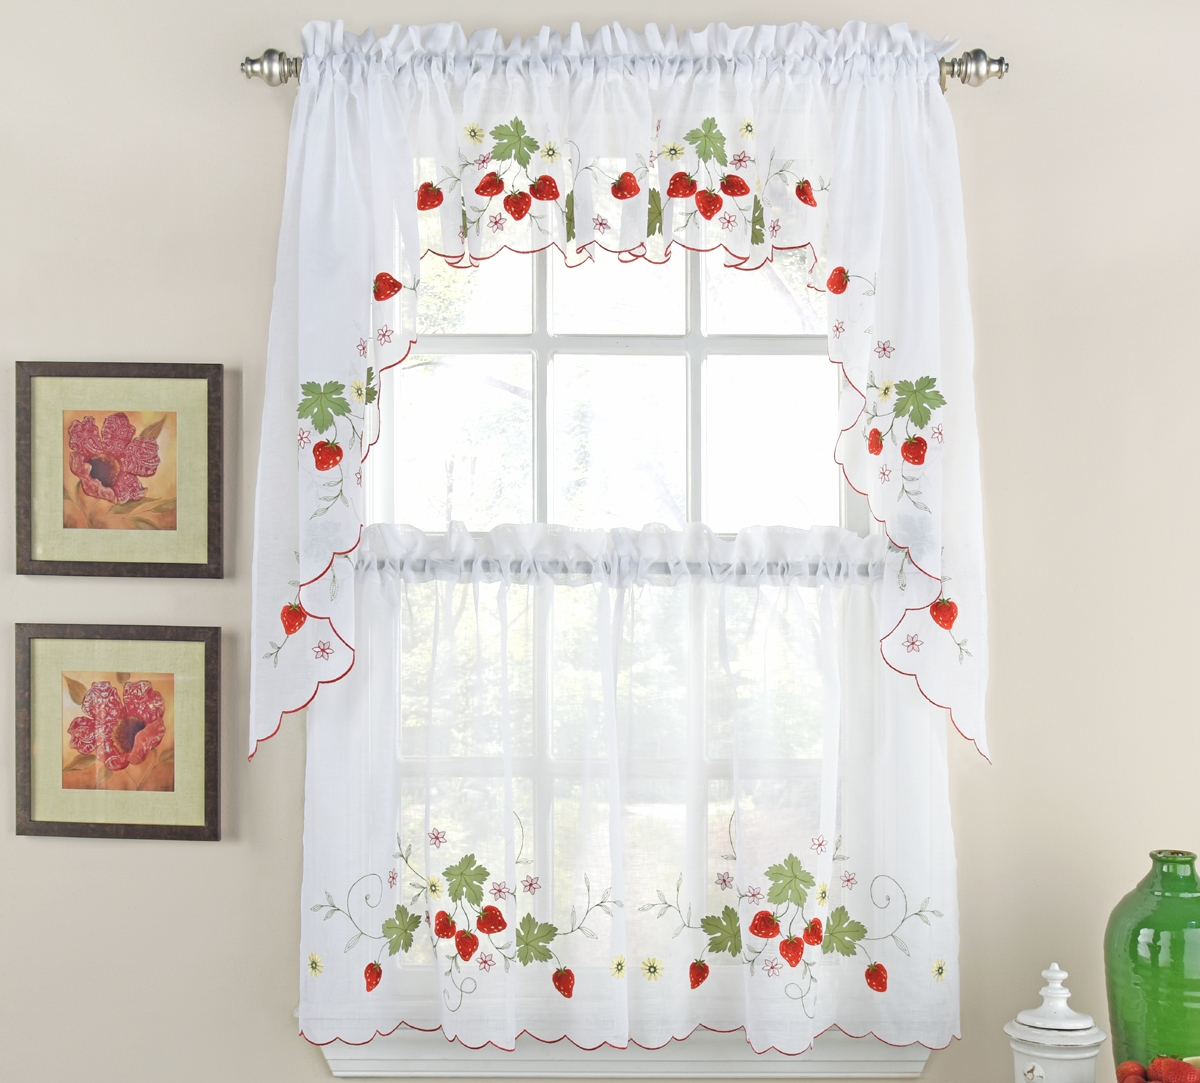 Designer Kitchen Curtains – Thecurtainshop With Classic Kitchen Curtain Sets (View 10 of 20)